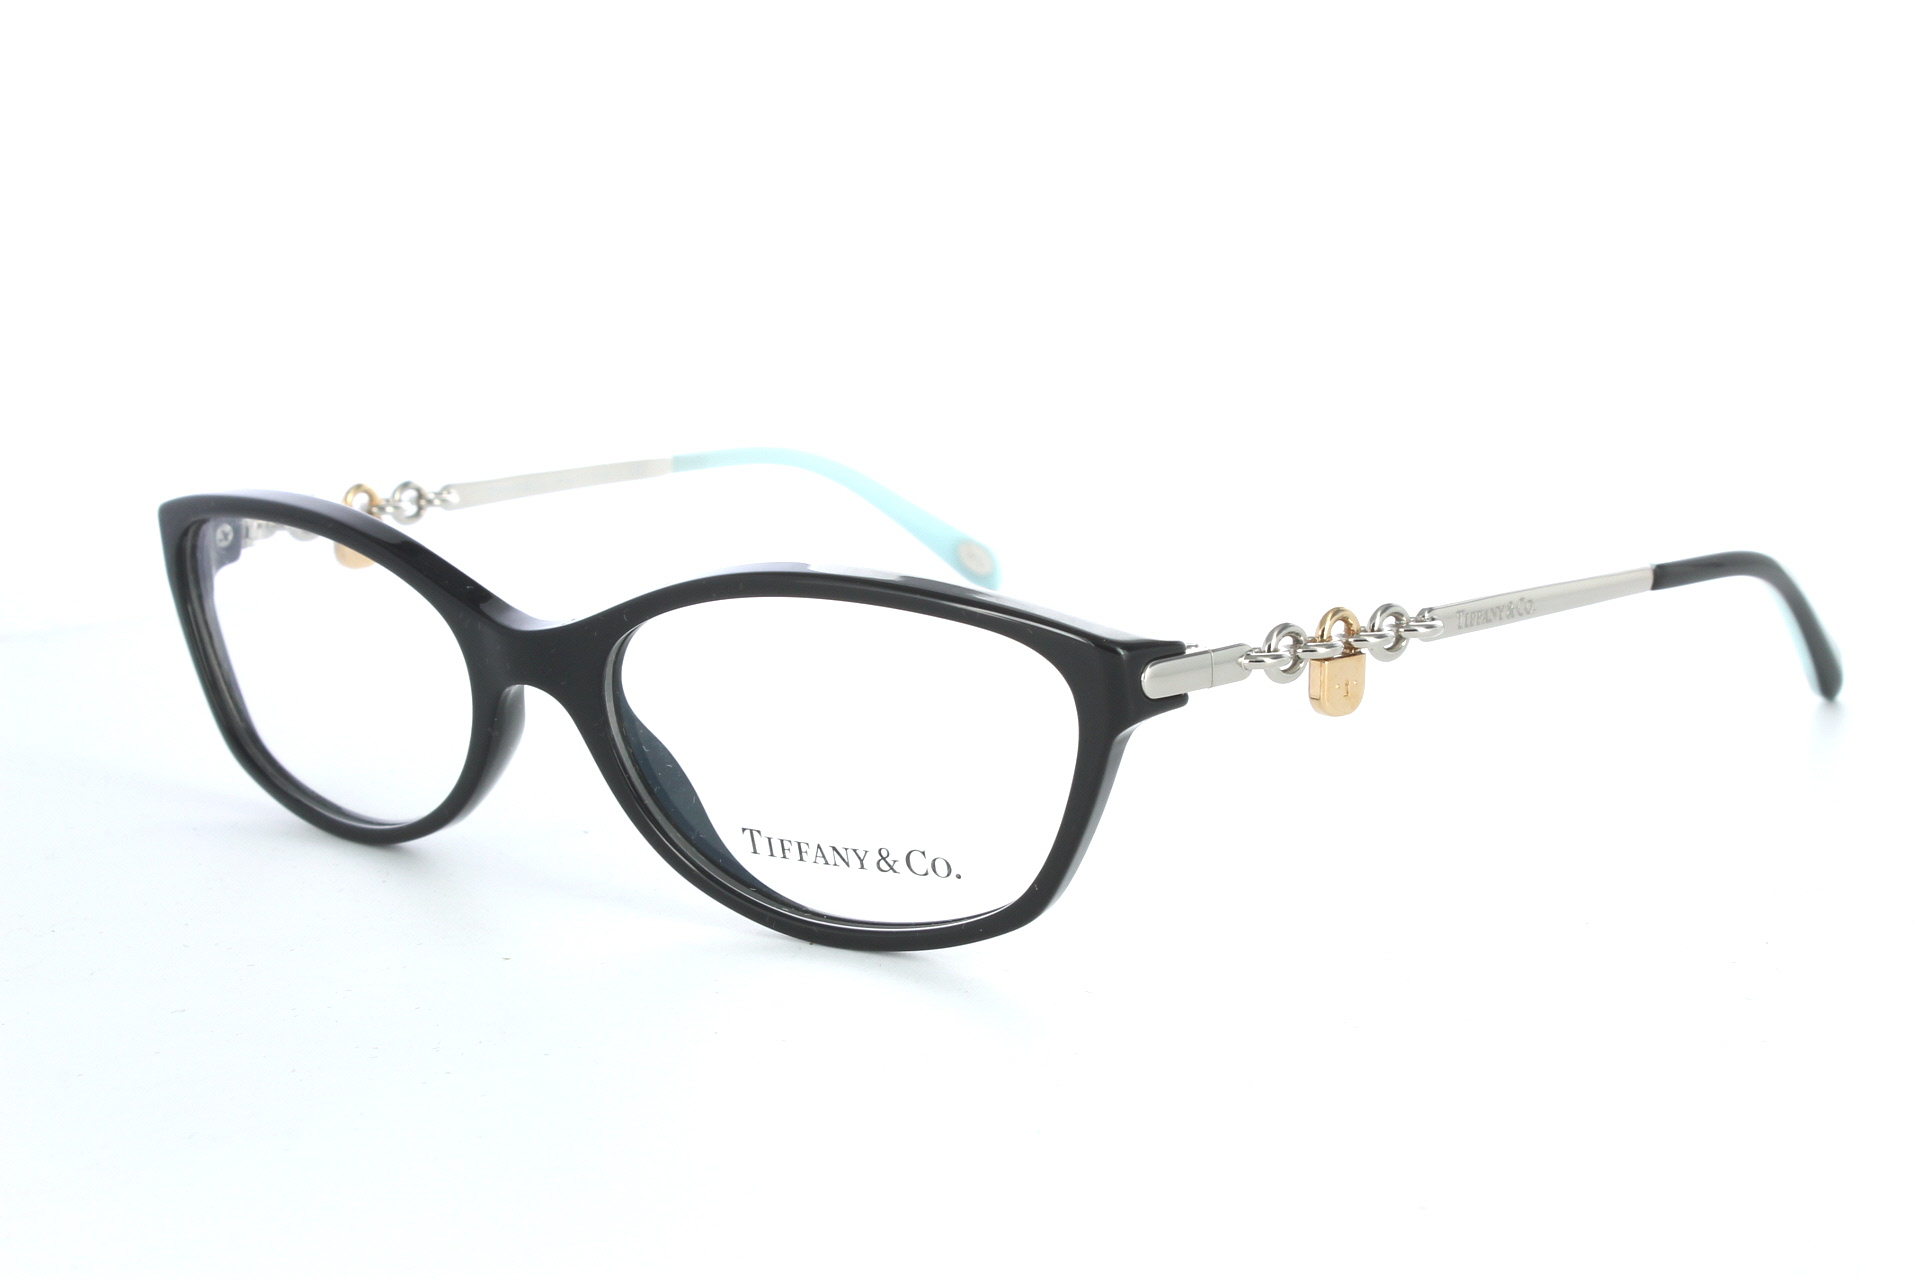 Tiffany & Co TF 2063 Tiffany & Co Designer Glasses